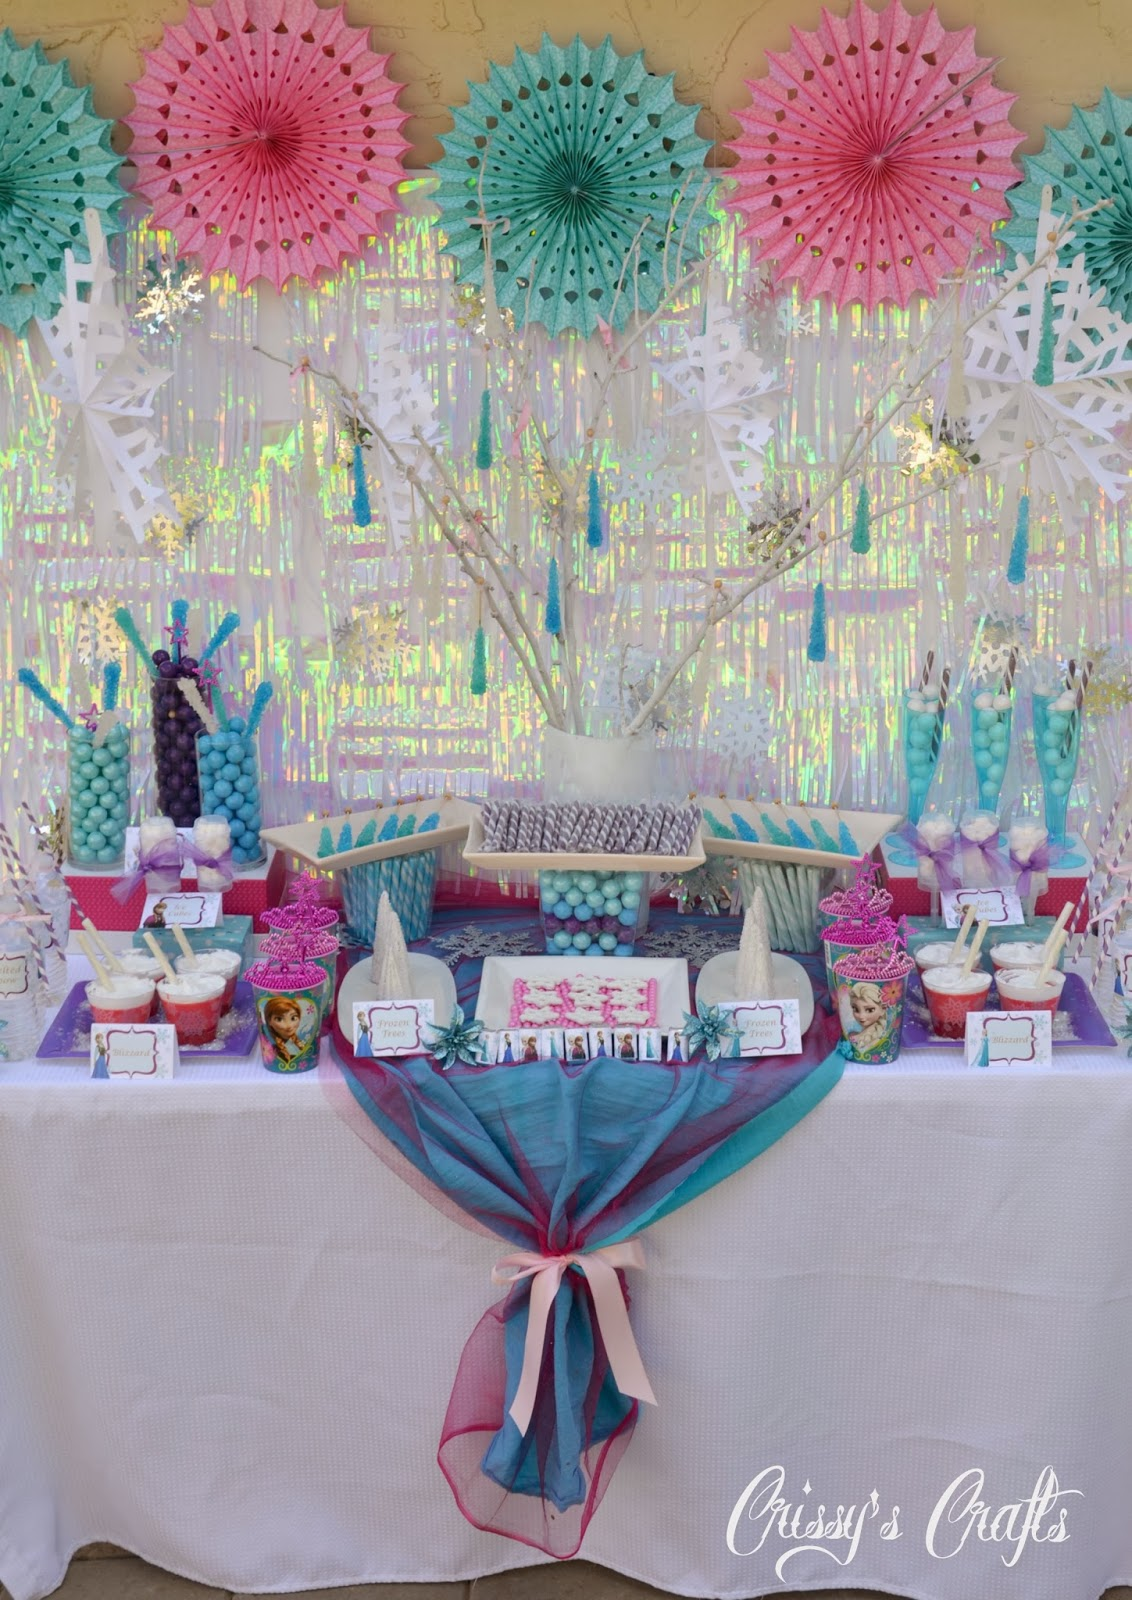 Crissys Crafts Disneys Frozen Party GIVEAWAY